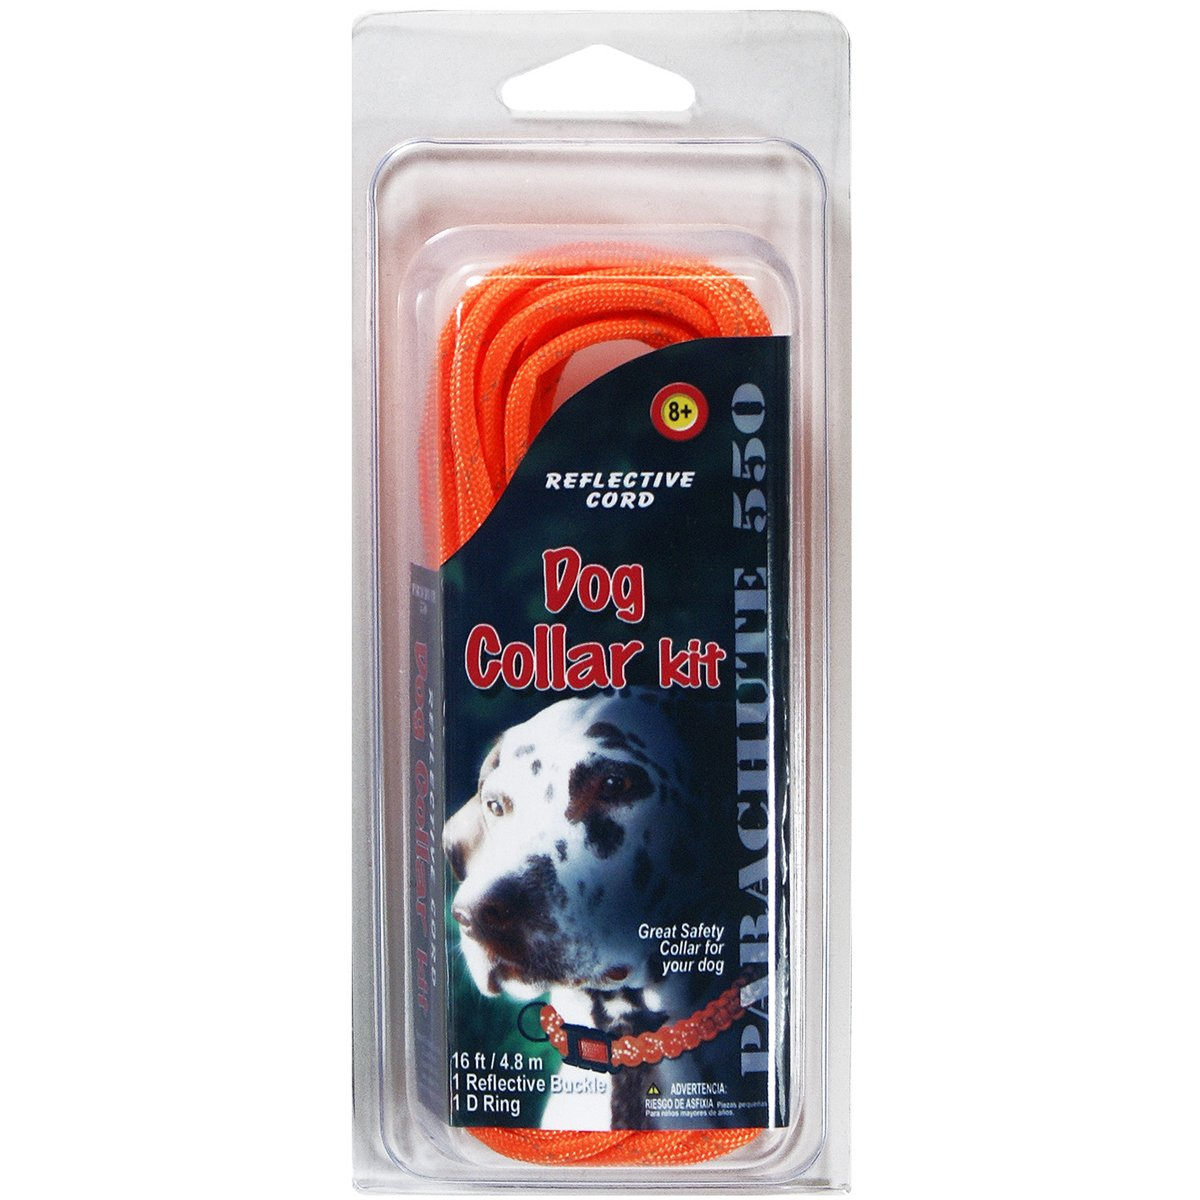 Pepperell Parachute Cord Reflective Dog Collar Kit, Multicolor, 16FT